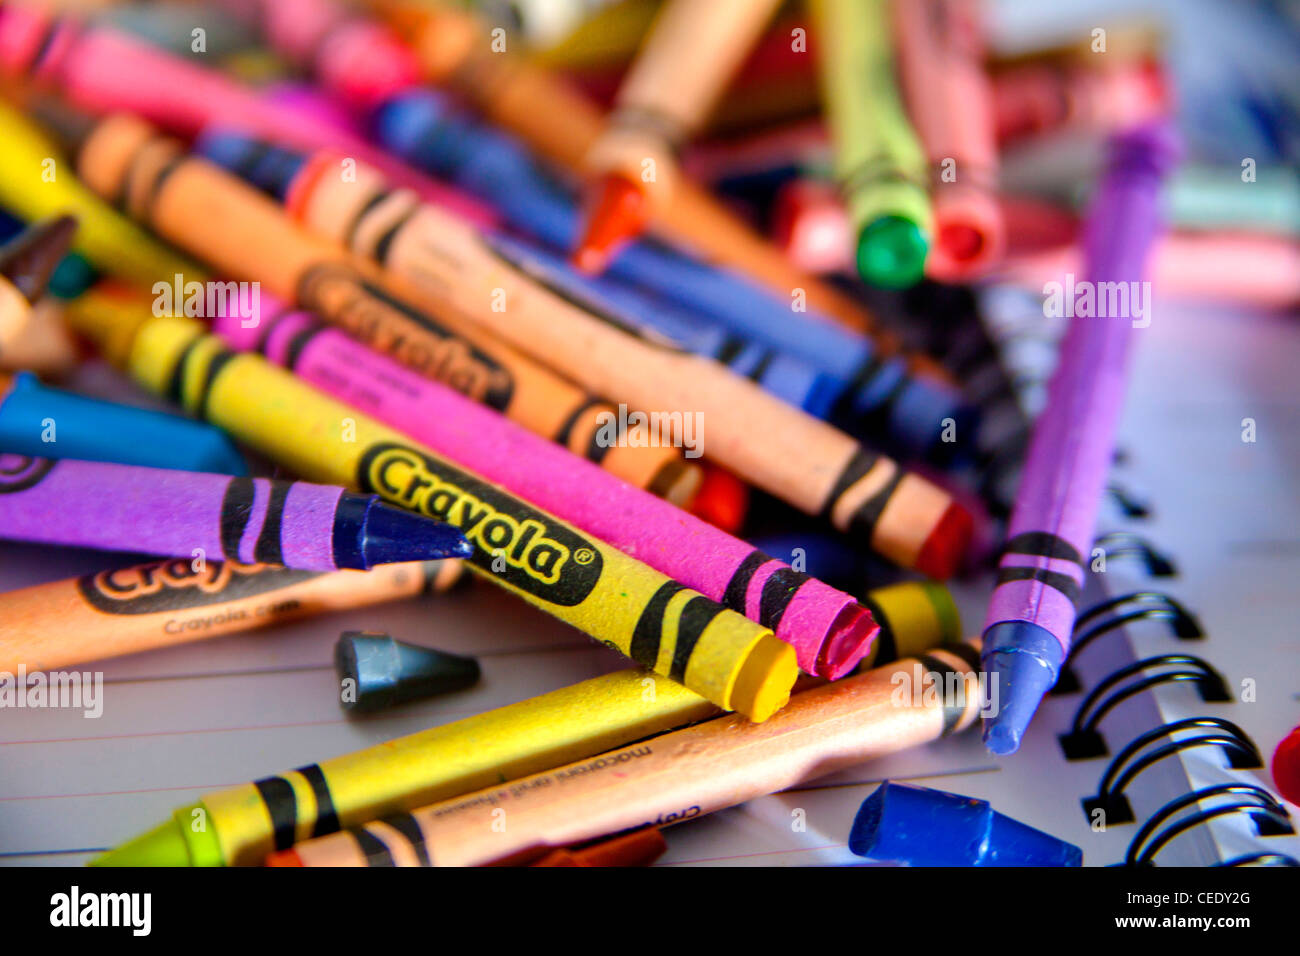 colorful crayola crayons